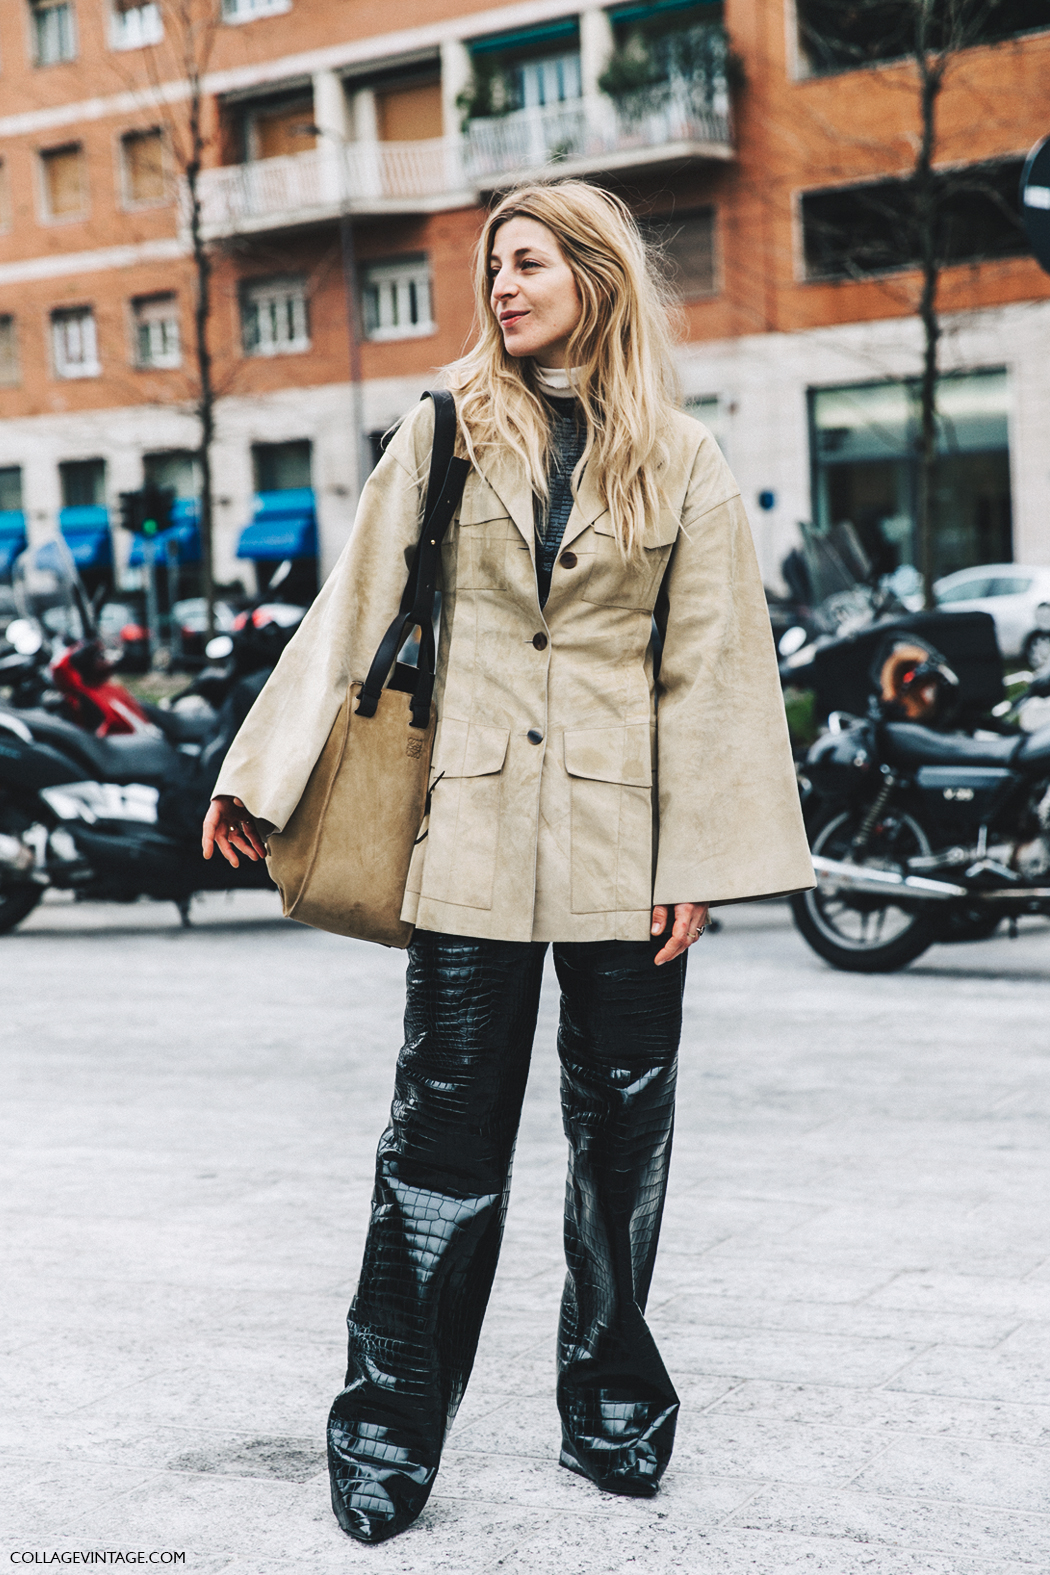 Milan_Fashion_Week_Fall_16-MFW-Street_Style-Collage_Vintage-Ada_kokosar-Leather_trousers-2